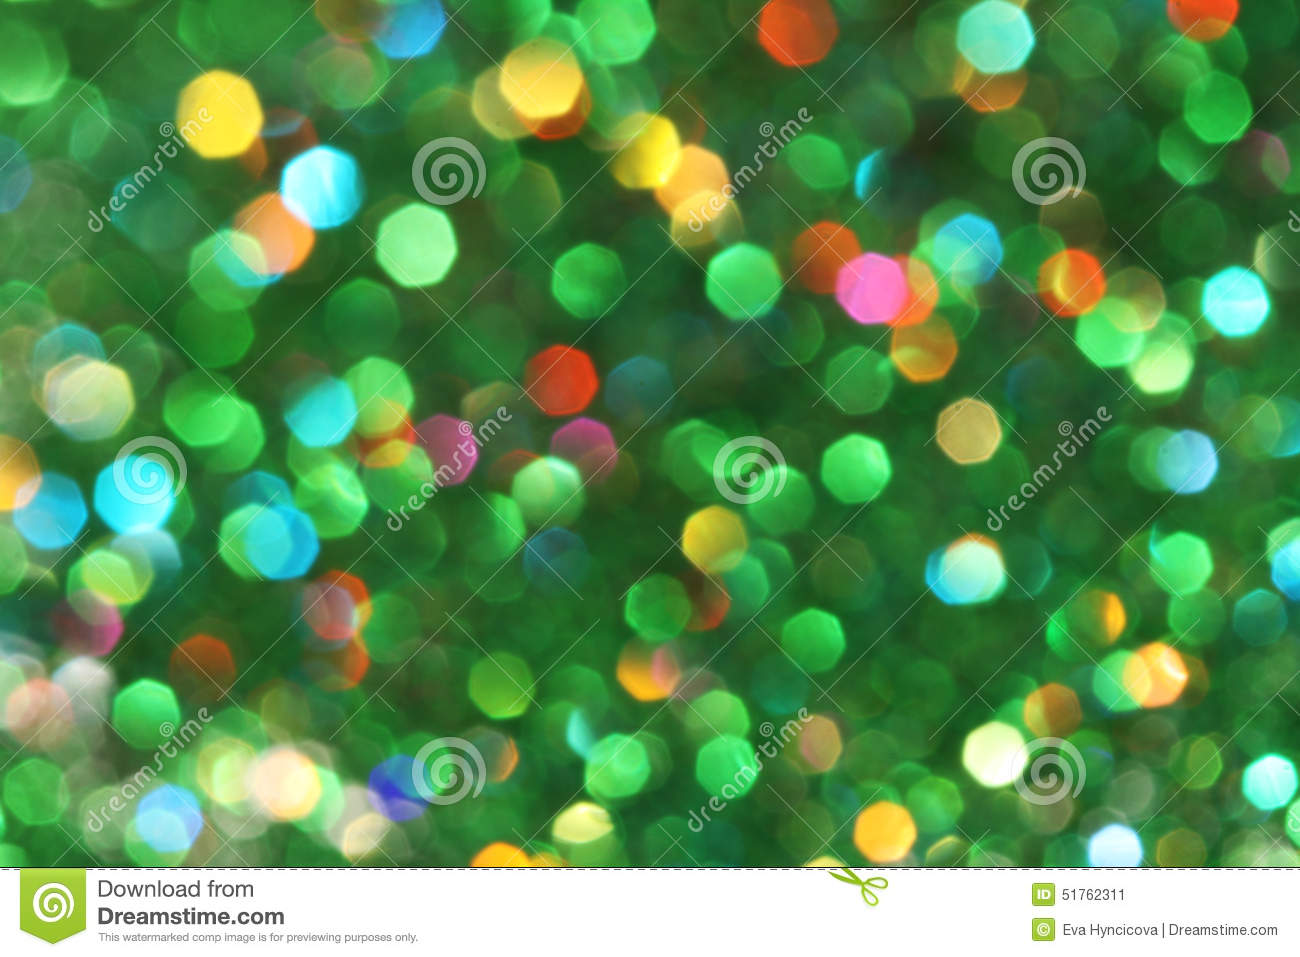 Dark abstract green, red, yellow, turquoise glitter background christmas tree-abstract background